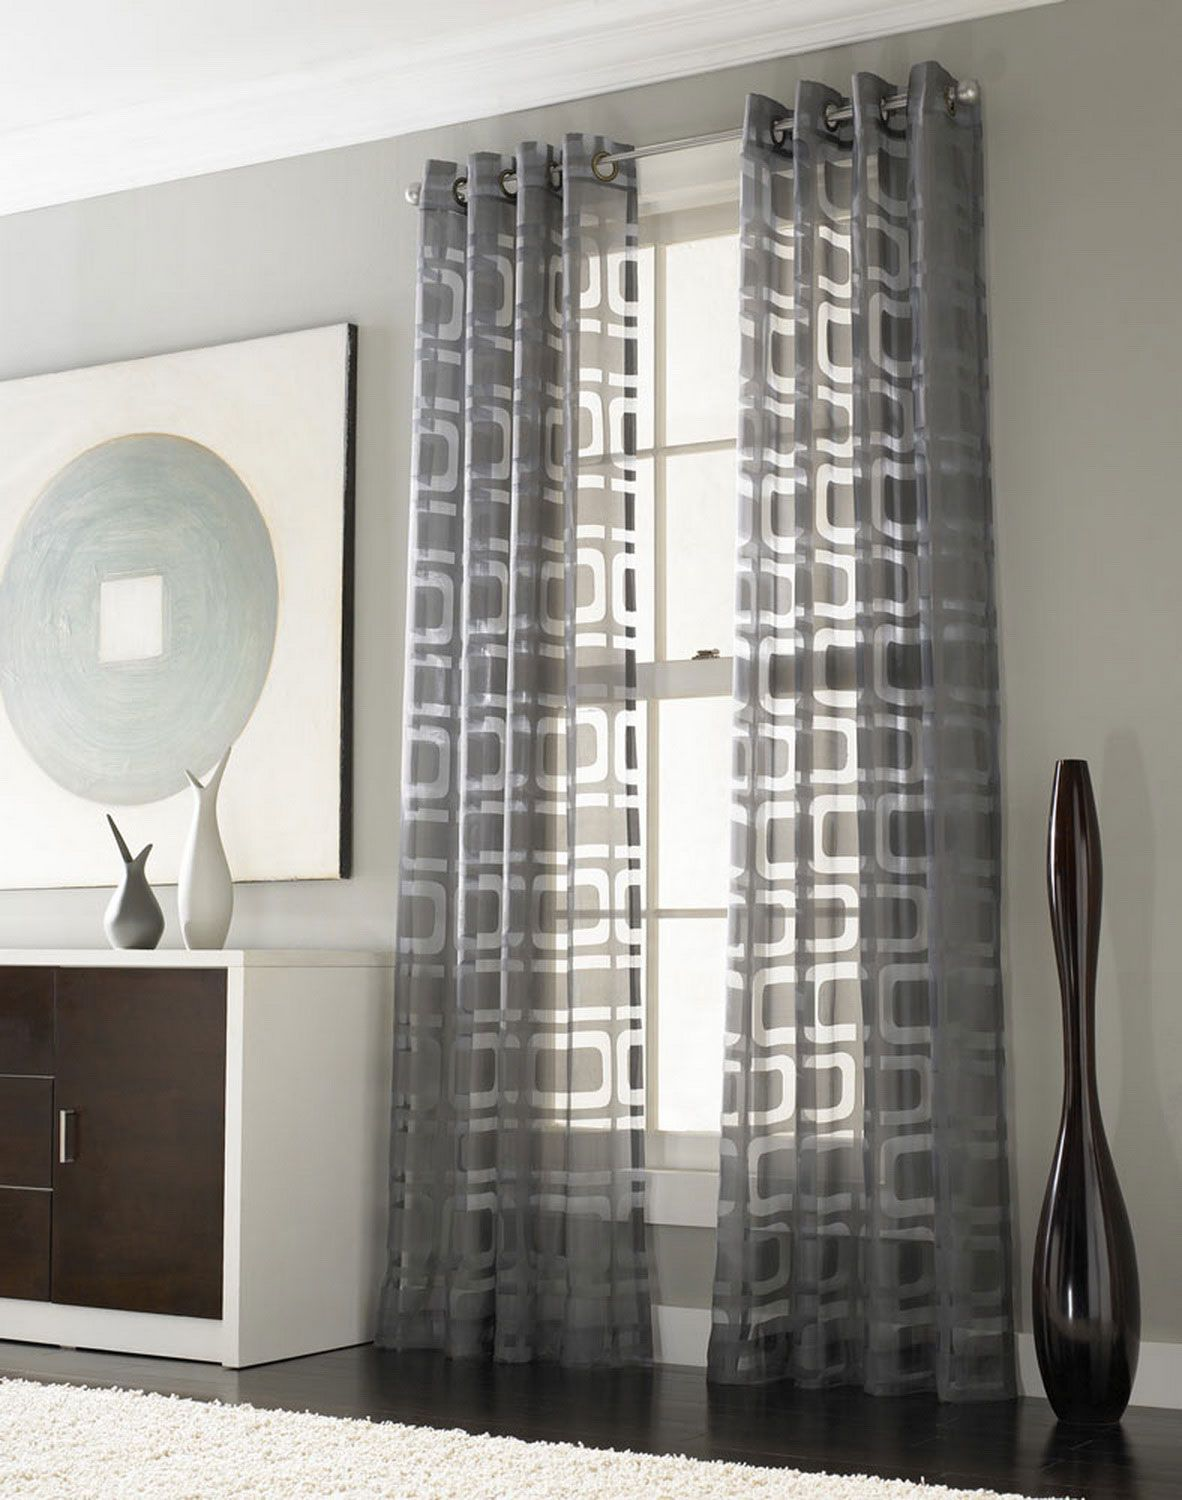 living room window valance ideas%0A Blind  u     Curtains  Picturesque Othello Modern Grommet Curtain Ideas For  Large Windows  bedroom curtain ideas large windows  big fansy curtains     STEPINIT